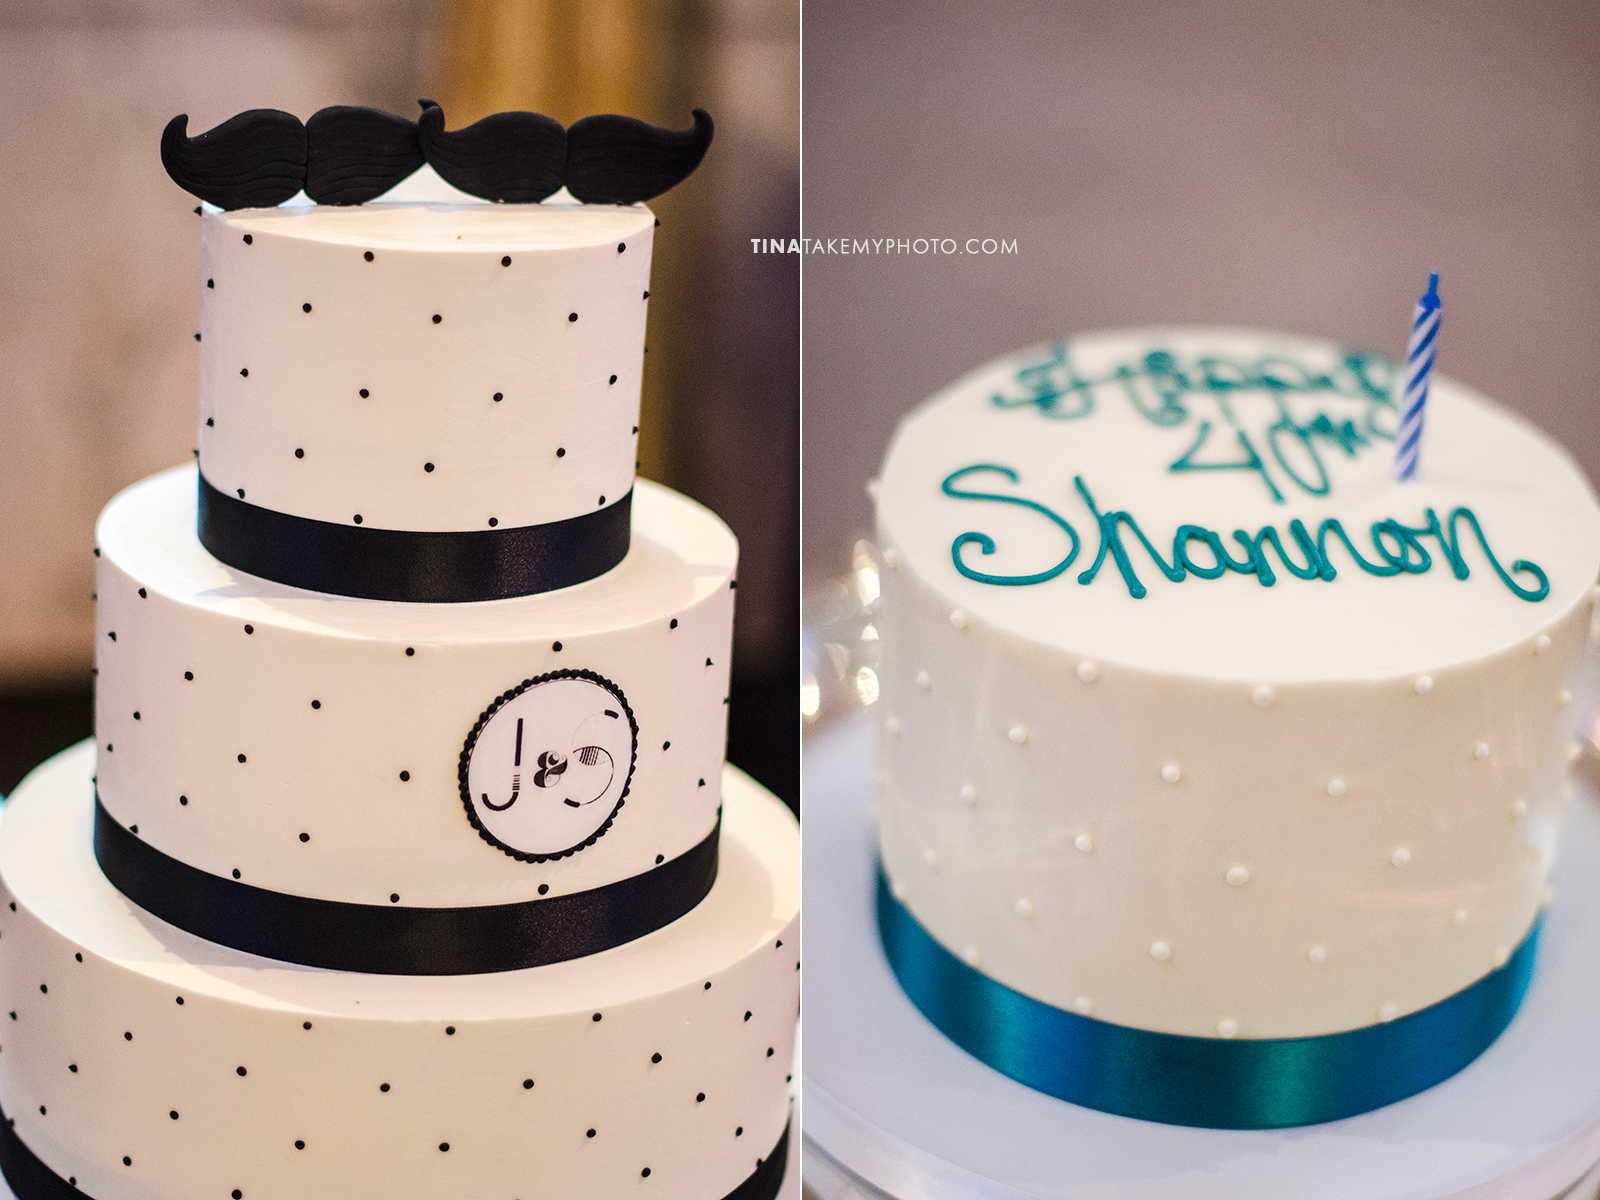 35-Washington-DC-Virginia-Gay-Same-Sex-Wedding-Men-12-13-14-Moustache-3-Tier-Cake